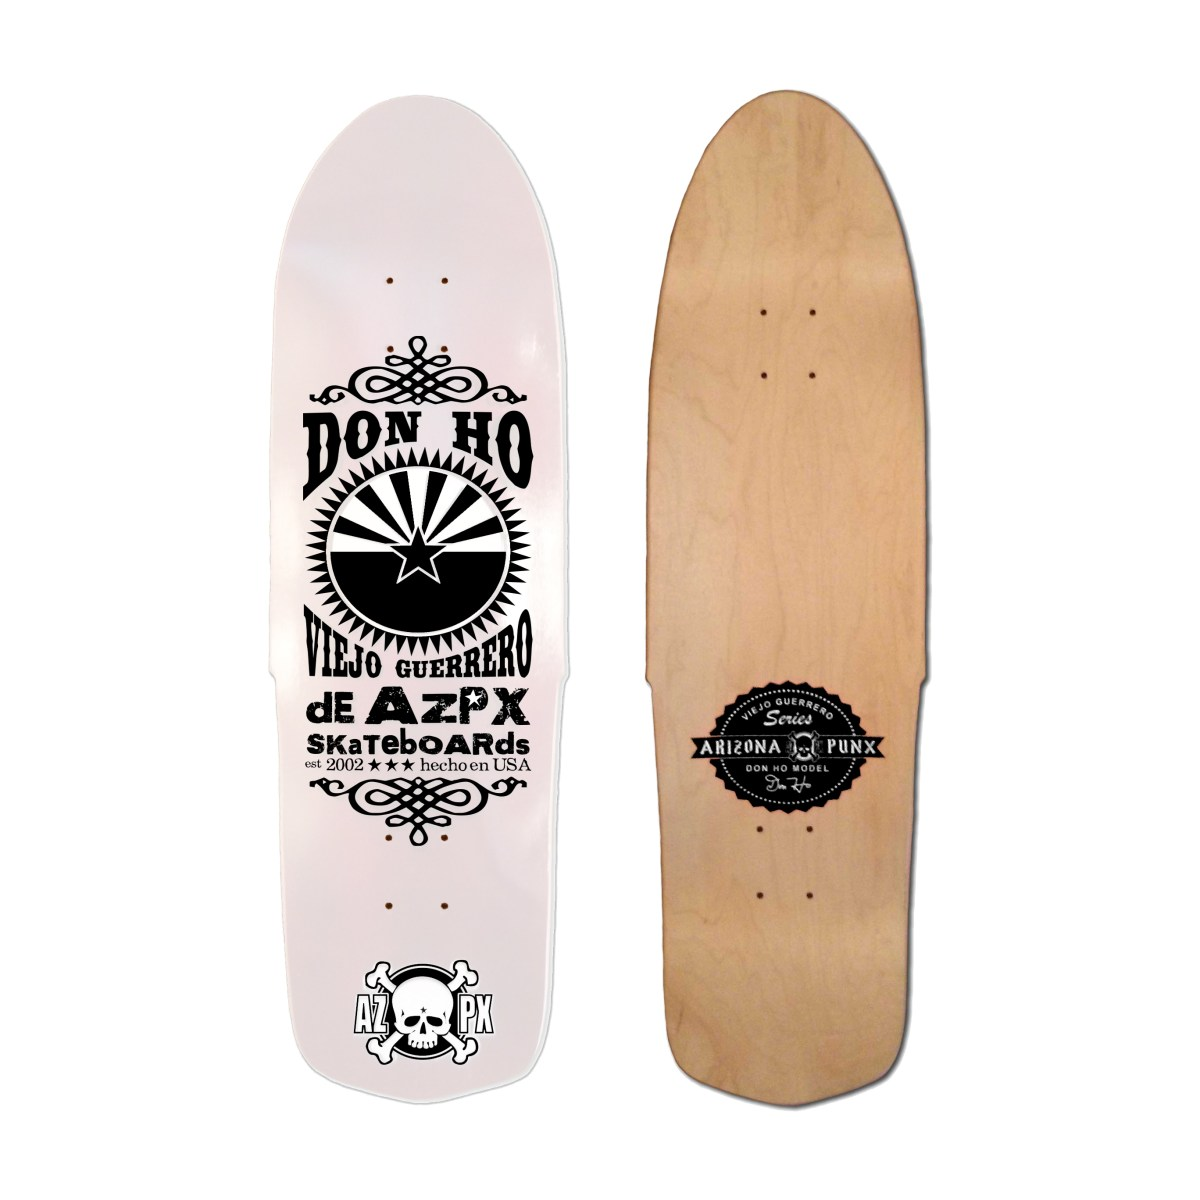 Don Ho Viejo Guerrero Series 'Pearly White' Deck